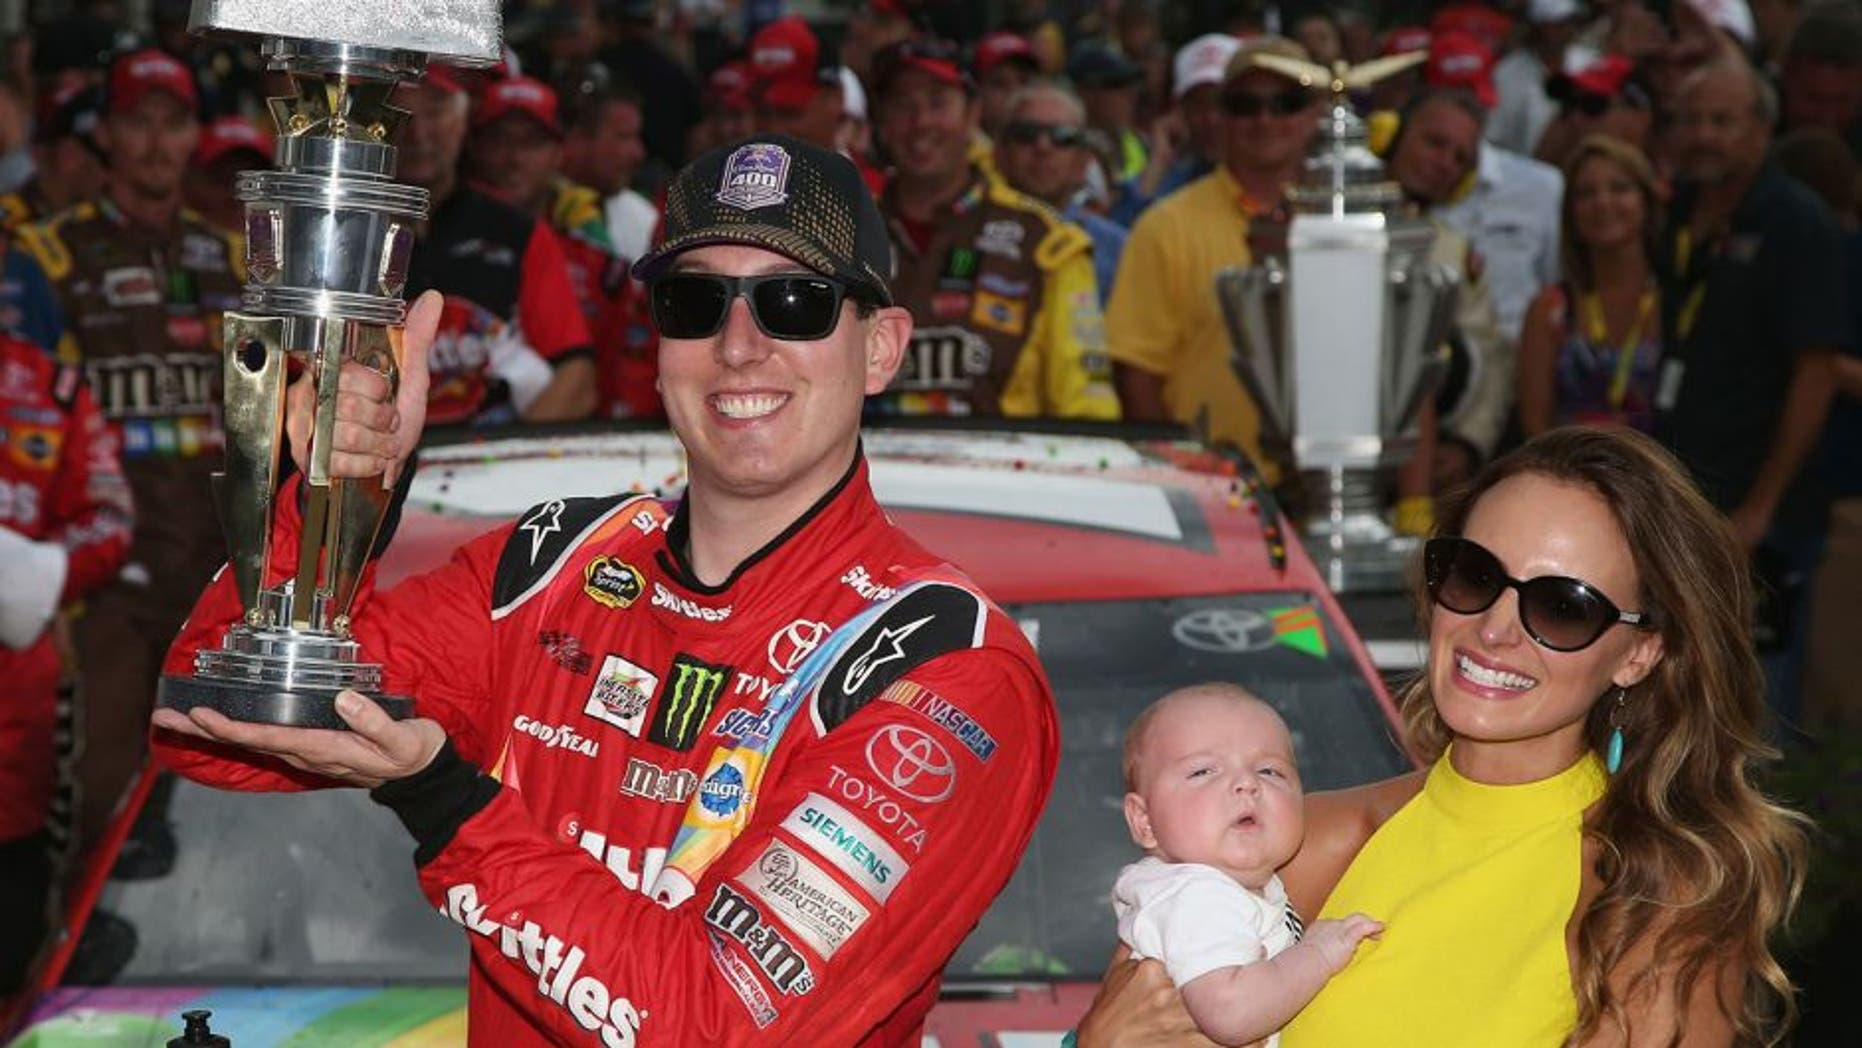 INDIANAPOLIS, IN - JULY 26: Kyle Busch, driver of the #18 Skittles Toyota, poses with the trophy in Victory Lane with wife Samantha and son Brexton Locke after winning the NASCAR Sprint Cup Series Crown Royal Presents the Jeff Kyle 400 at the Brickyard at Indianapolis Motor Speedway on July 26, 2015 in Indianapolis, Indiana. (Photo by Sean Gardner/NASCAR via Getty Images)